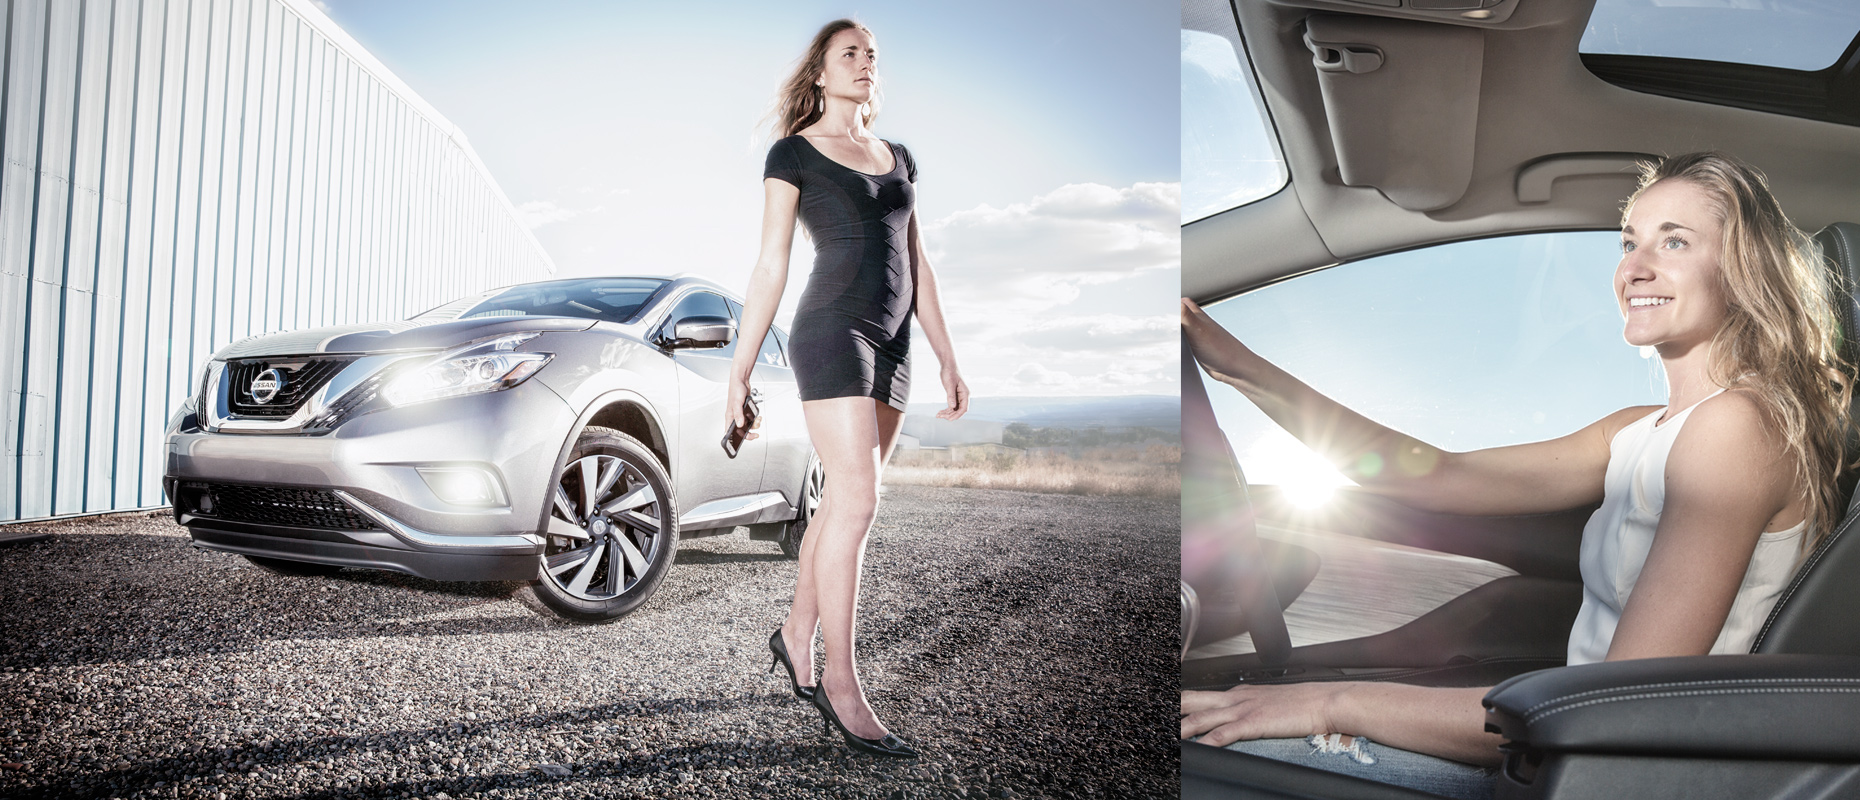 Beautiful young woman with Nissan Murano Automobile